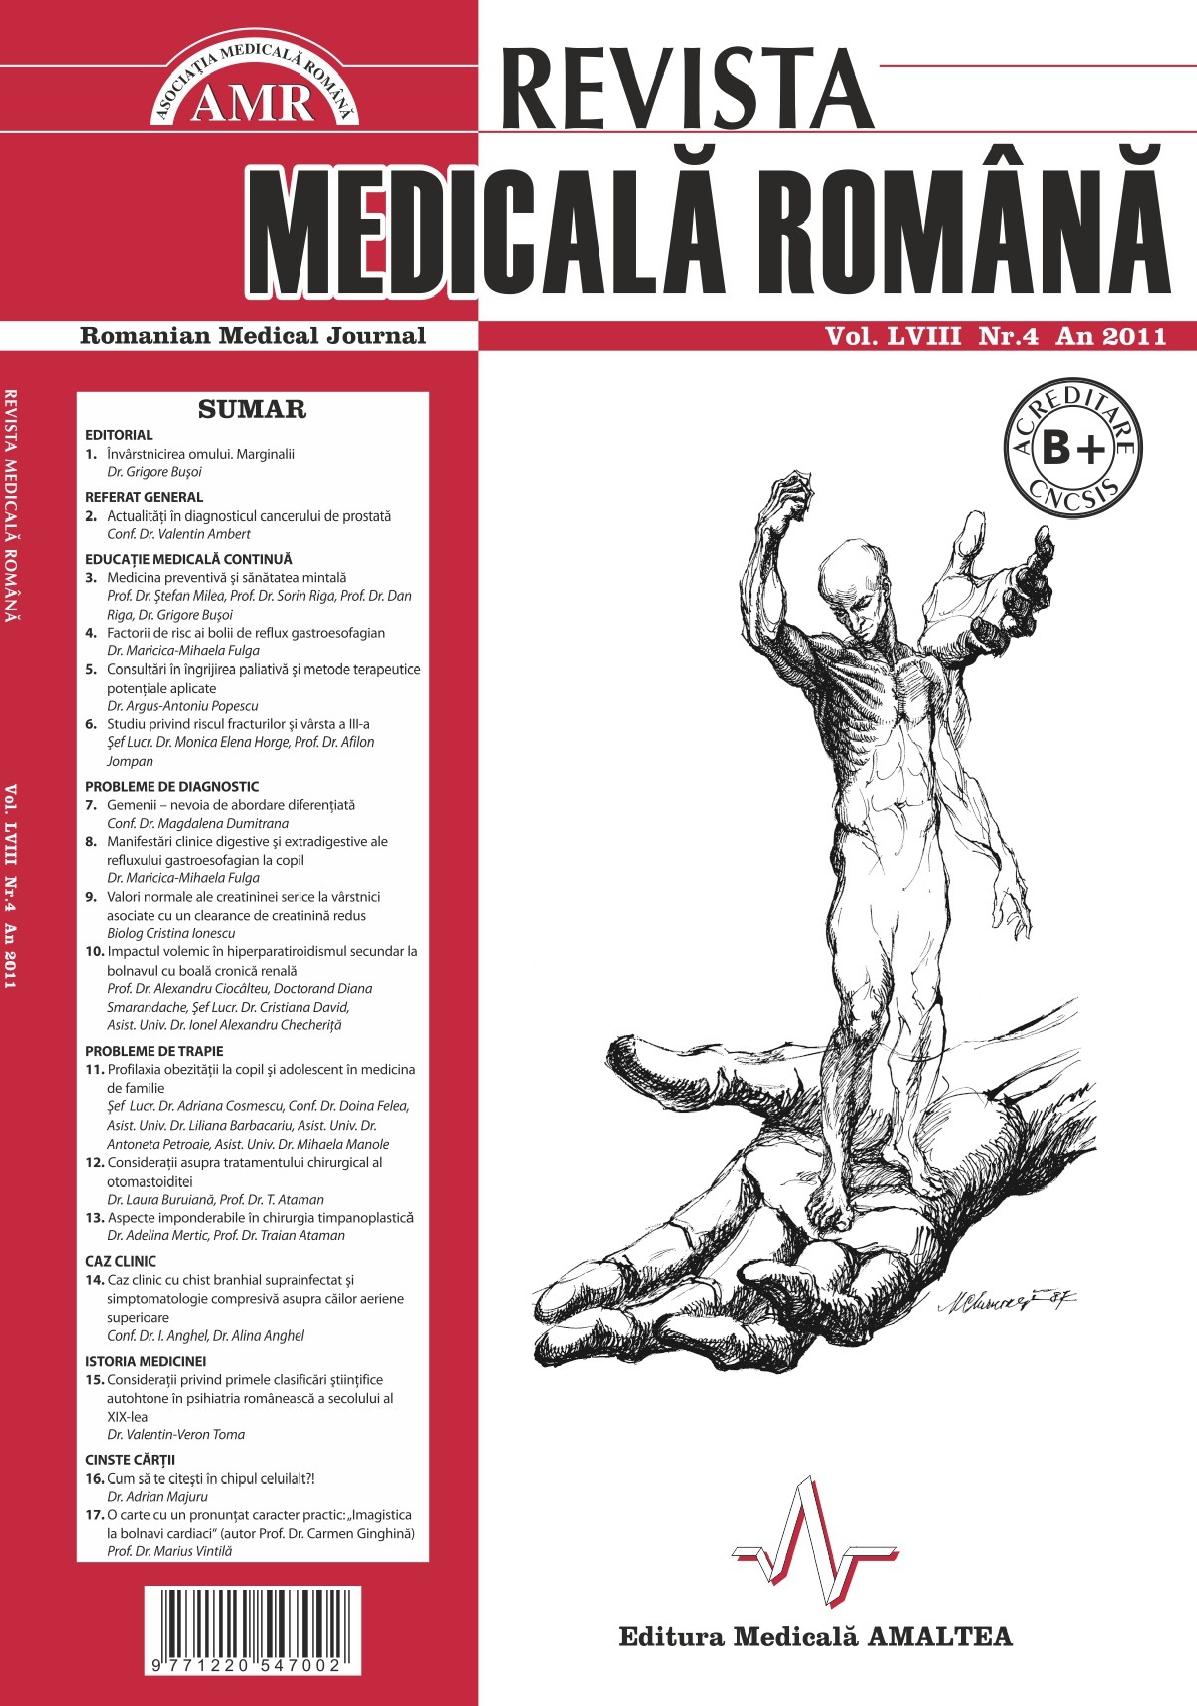 REVISTA MEDICALA ROMANA - Romanian Medical Journal, Vol. LVIII, No. 4, Year 2011